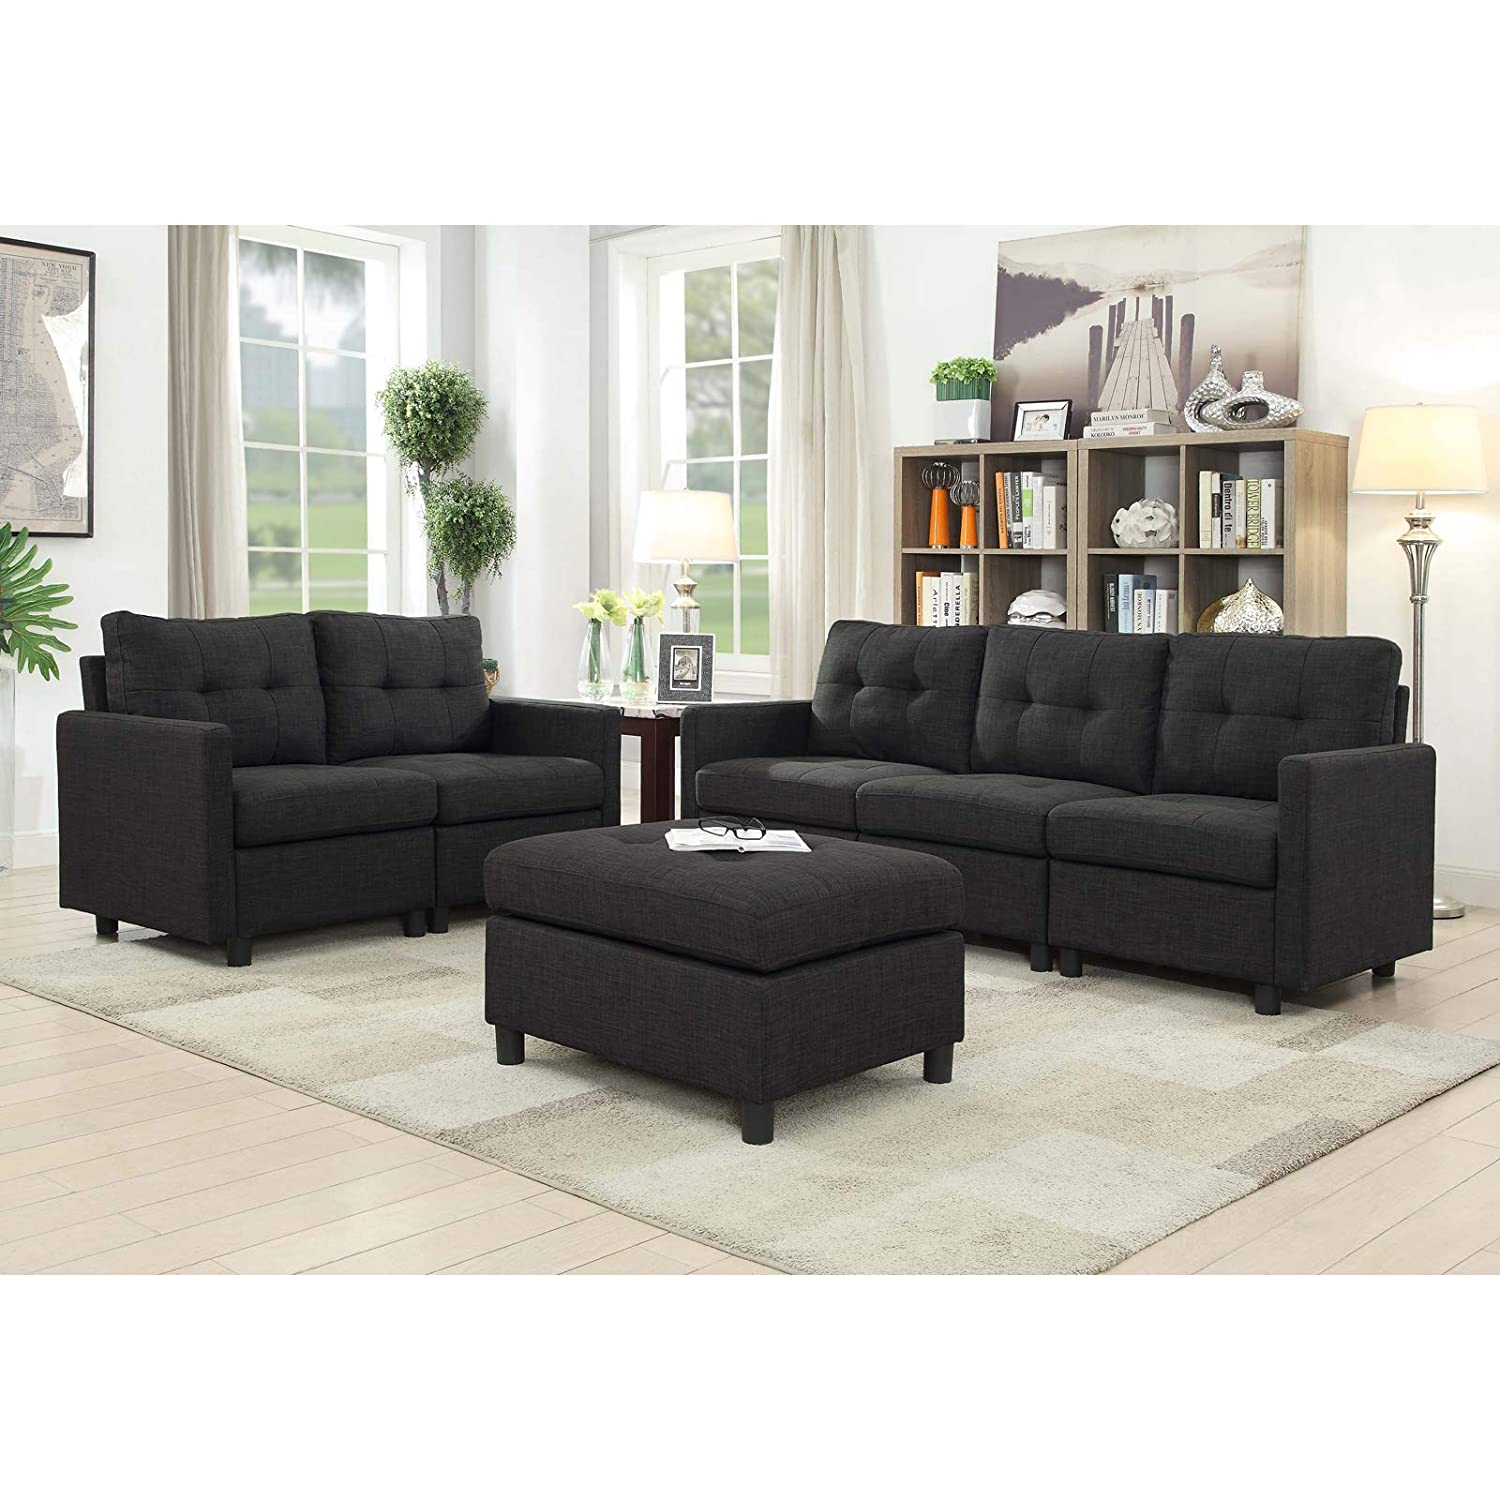 Cool Bliss Brands Modular Sectional Sofa Sets Assemble 6 Piece Gmtry Best Dining Table And Chair Ideas Images Gmtryco